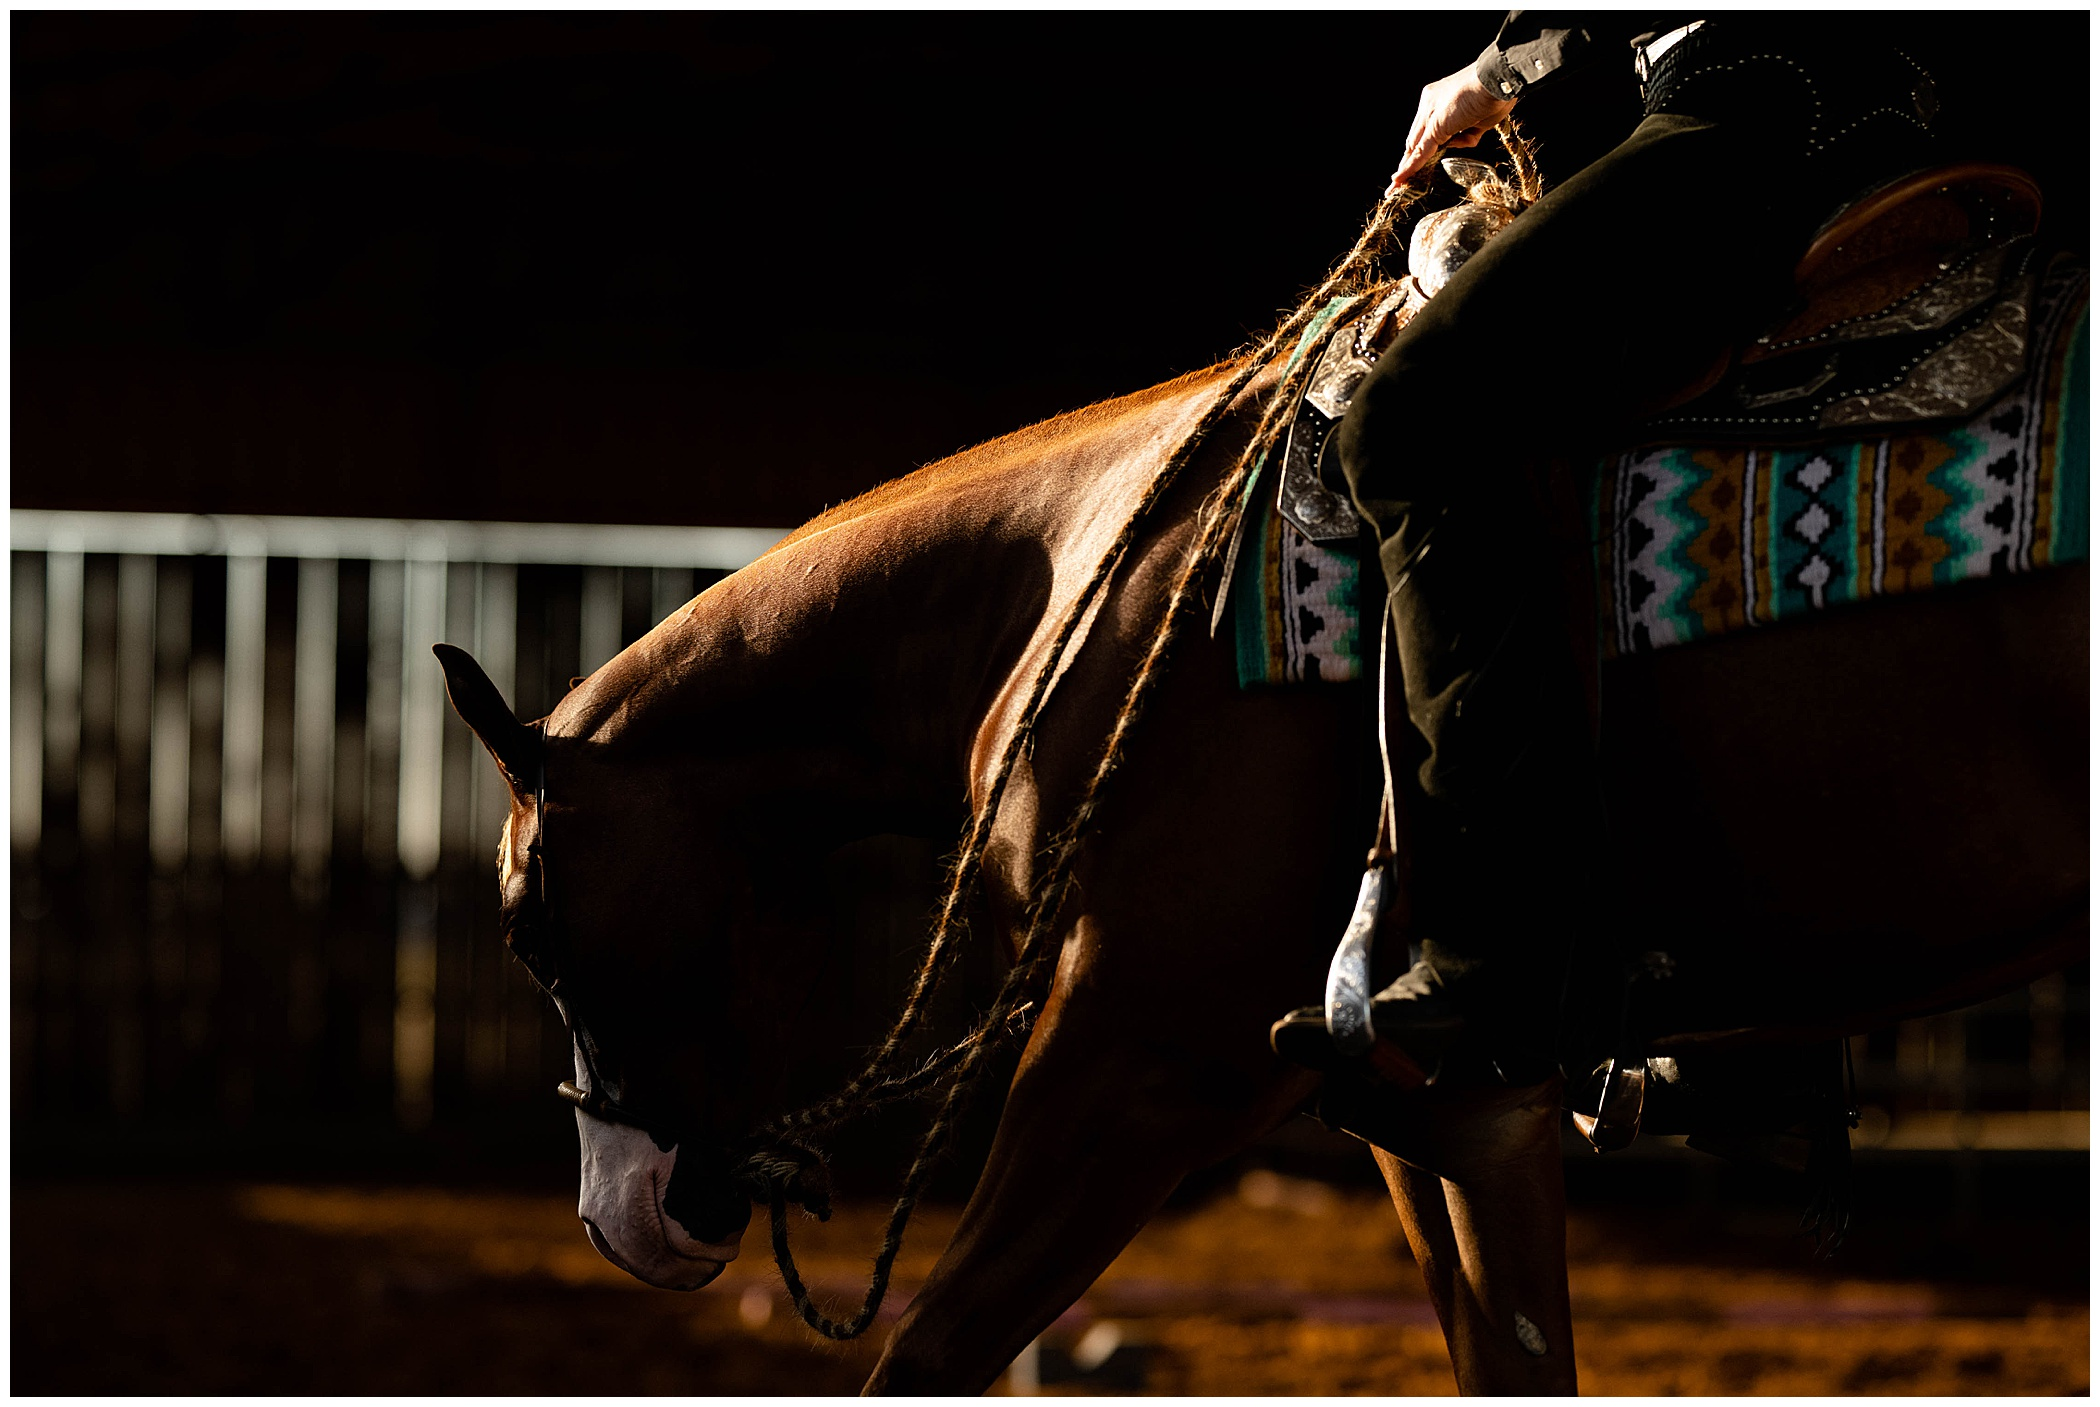 Person riding a western horse with dramatic lighting